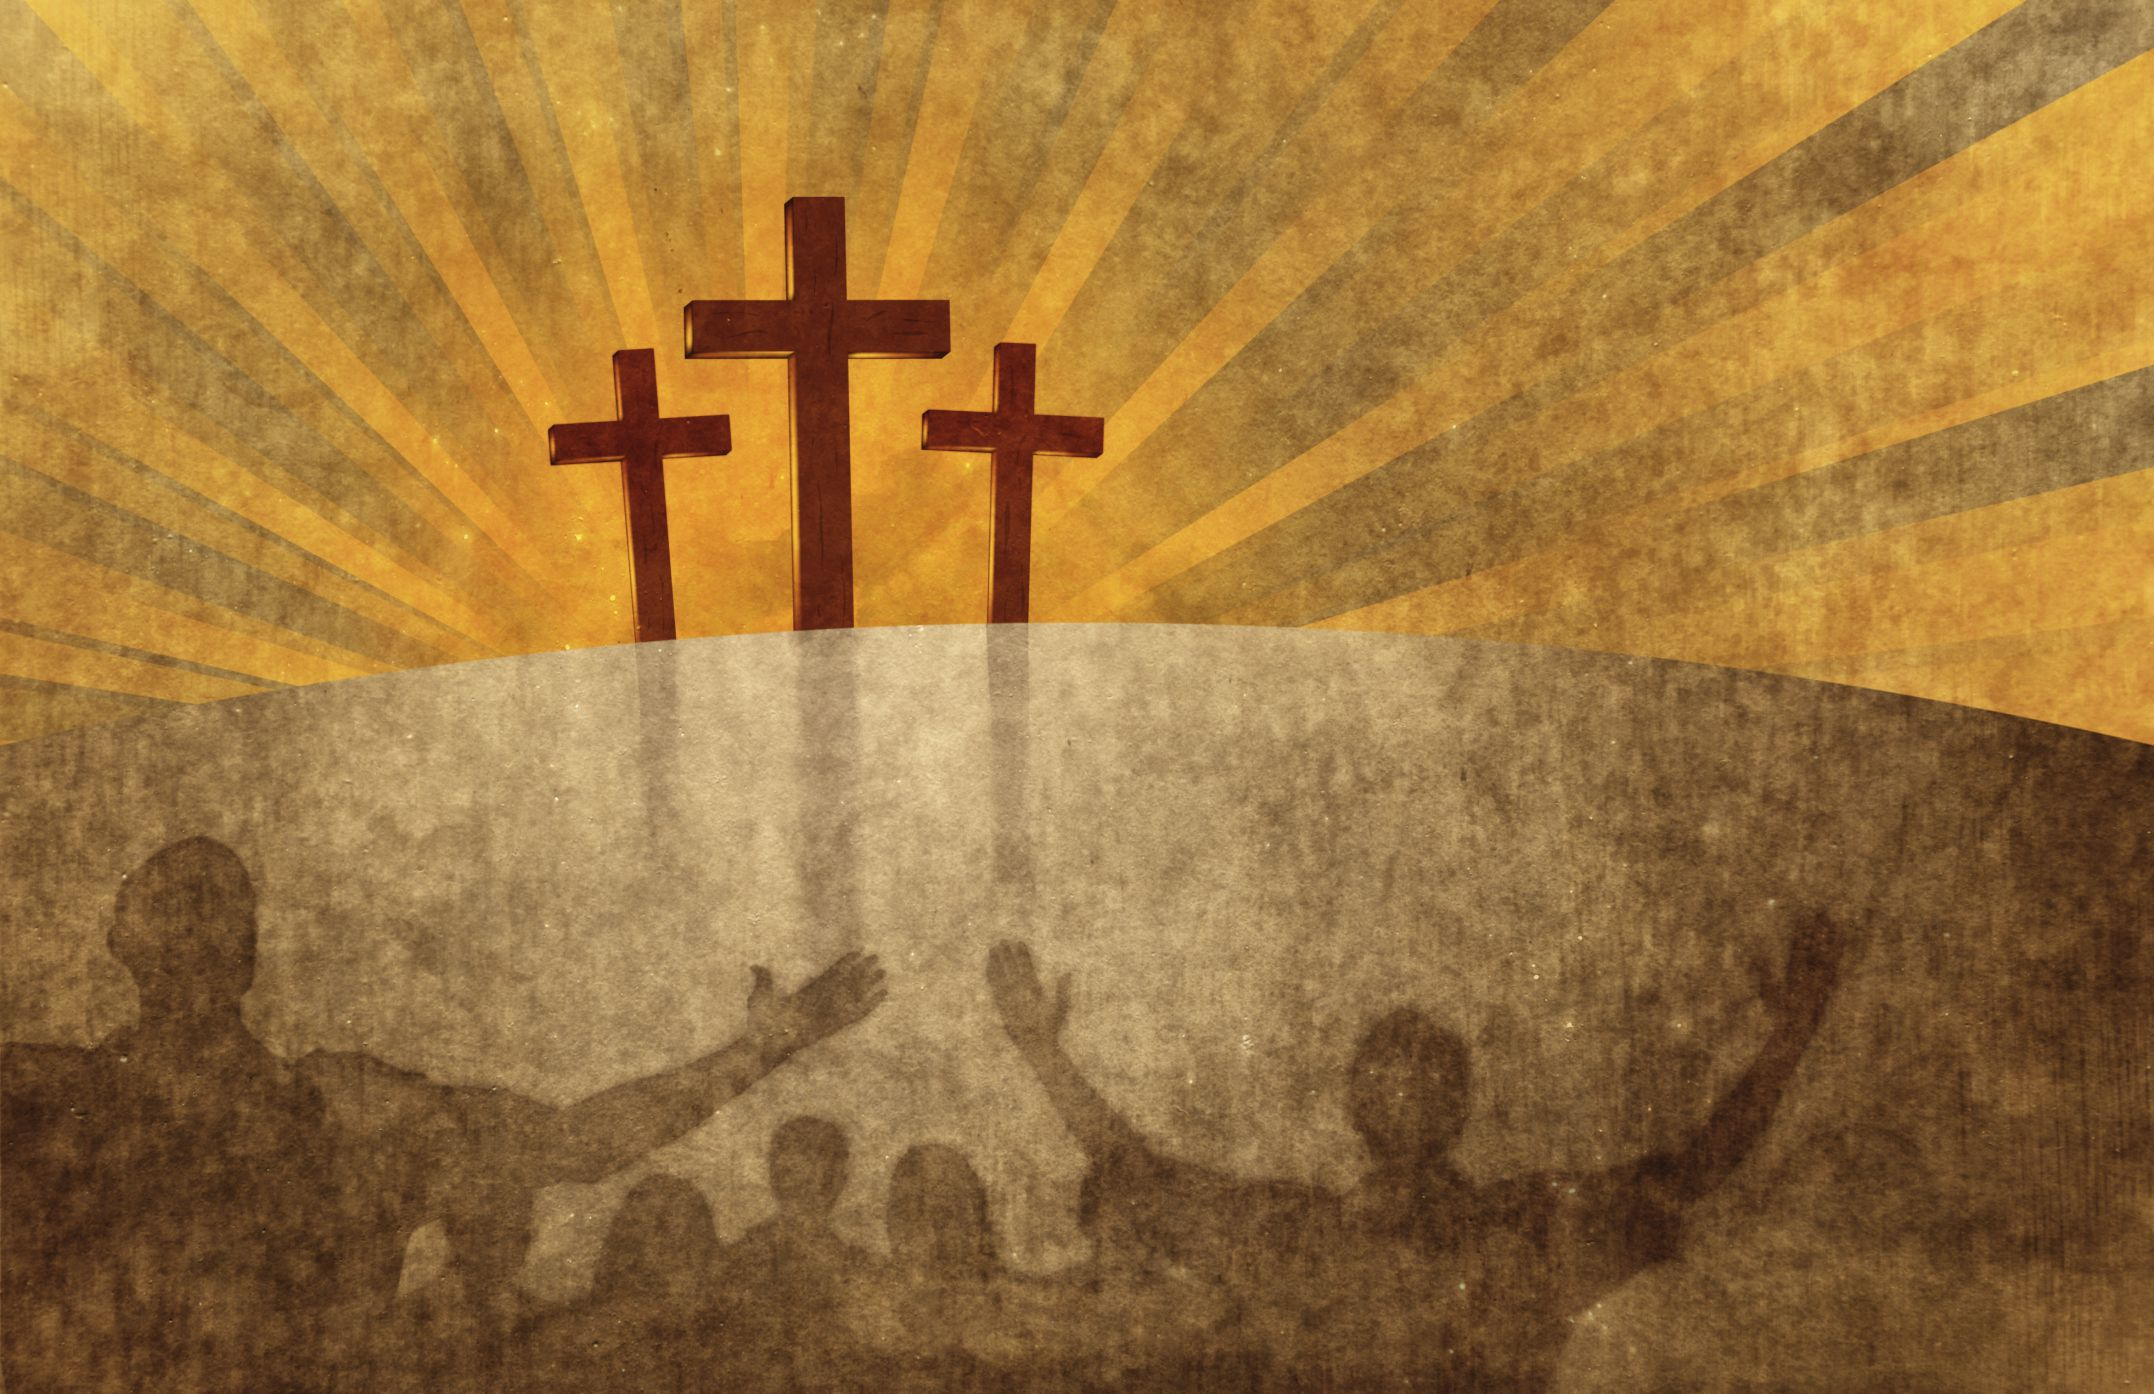 an analysis of the christian religion and the significance of jesus A christian refers to a follower of jesus christ who  catholicism vs christianity  the author is not either catholic or part of the christian religion.